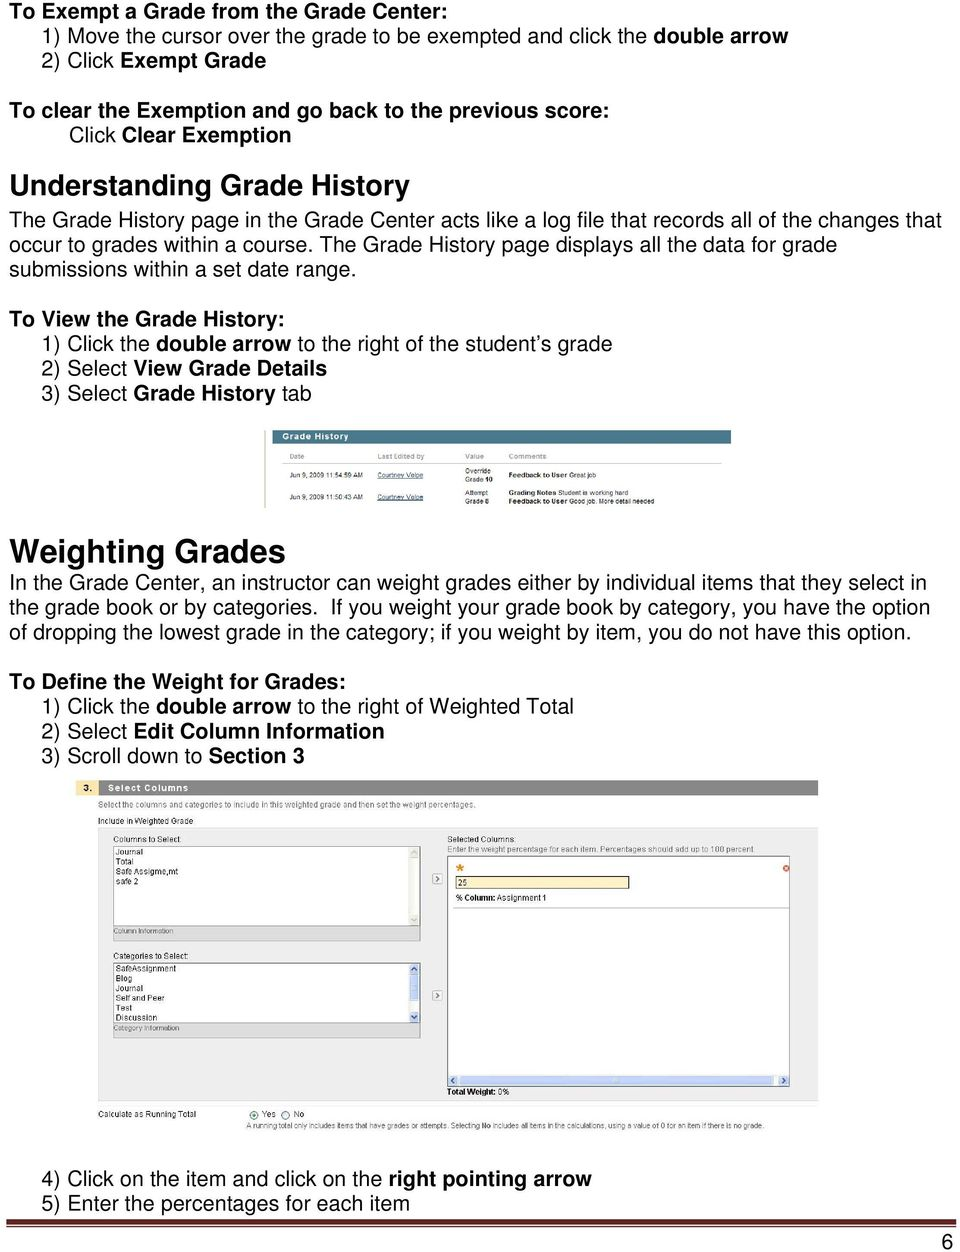 The Grade History page displays all the data for grade submissions within a set date range.